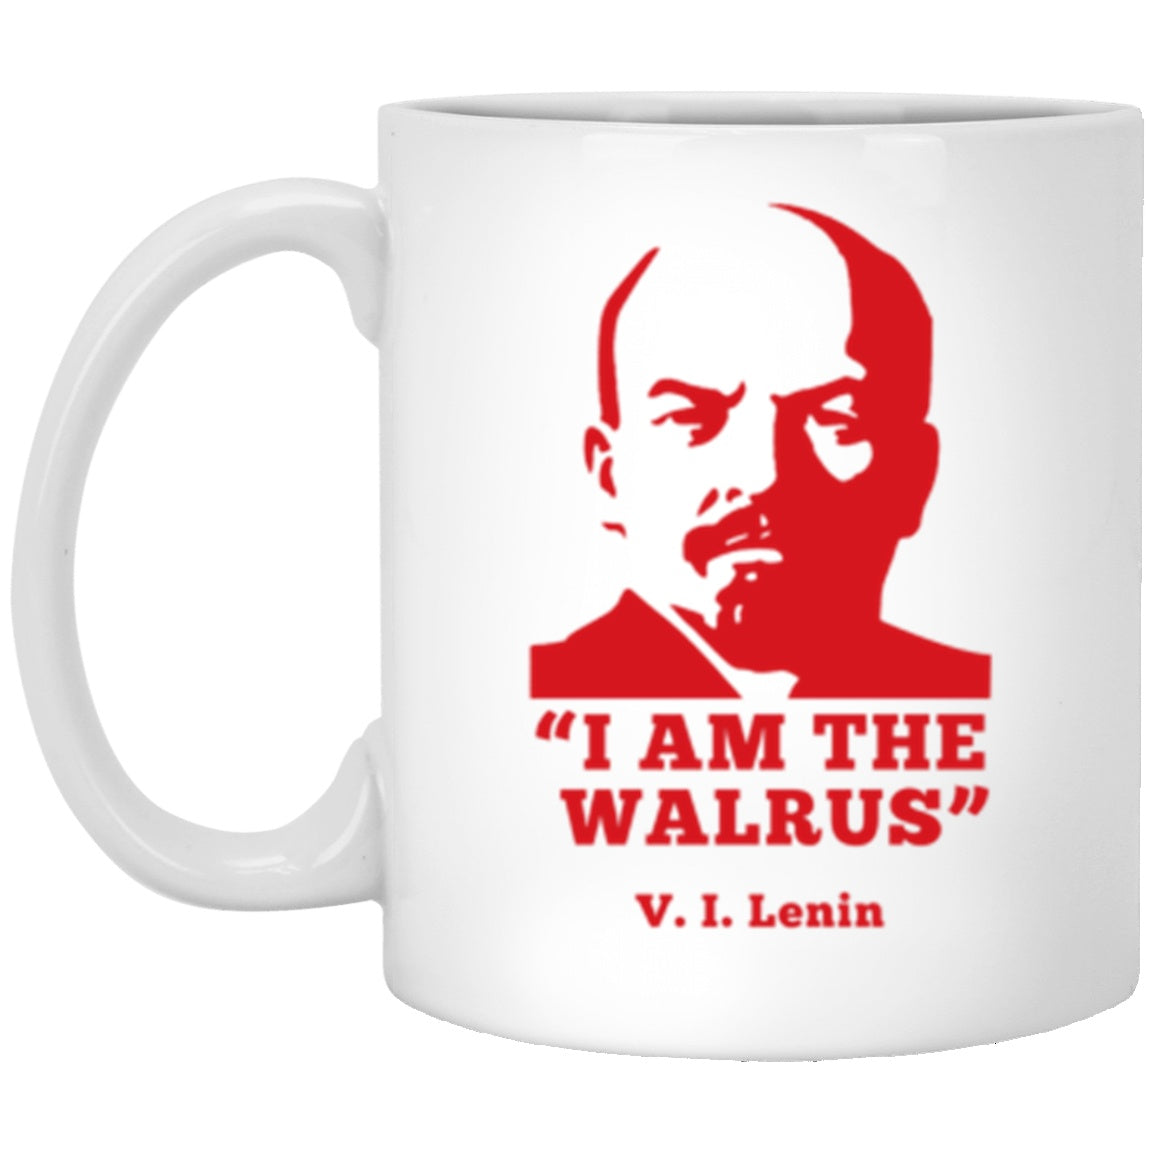 Drinkware - I Am The Walrus White Mug 11oz (2-sided)